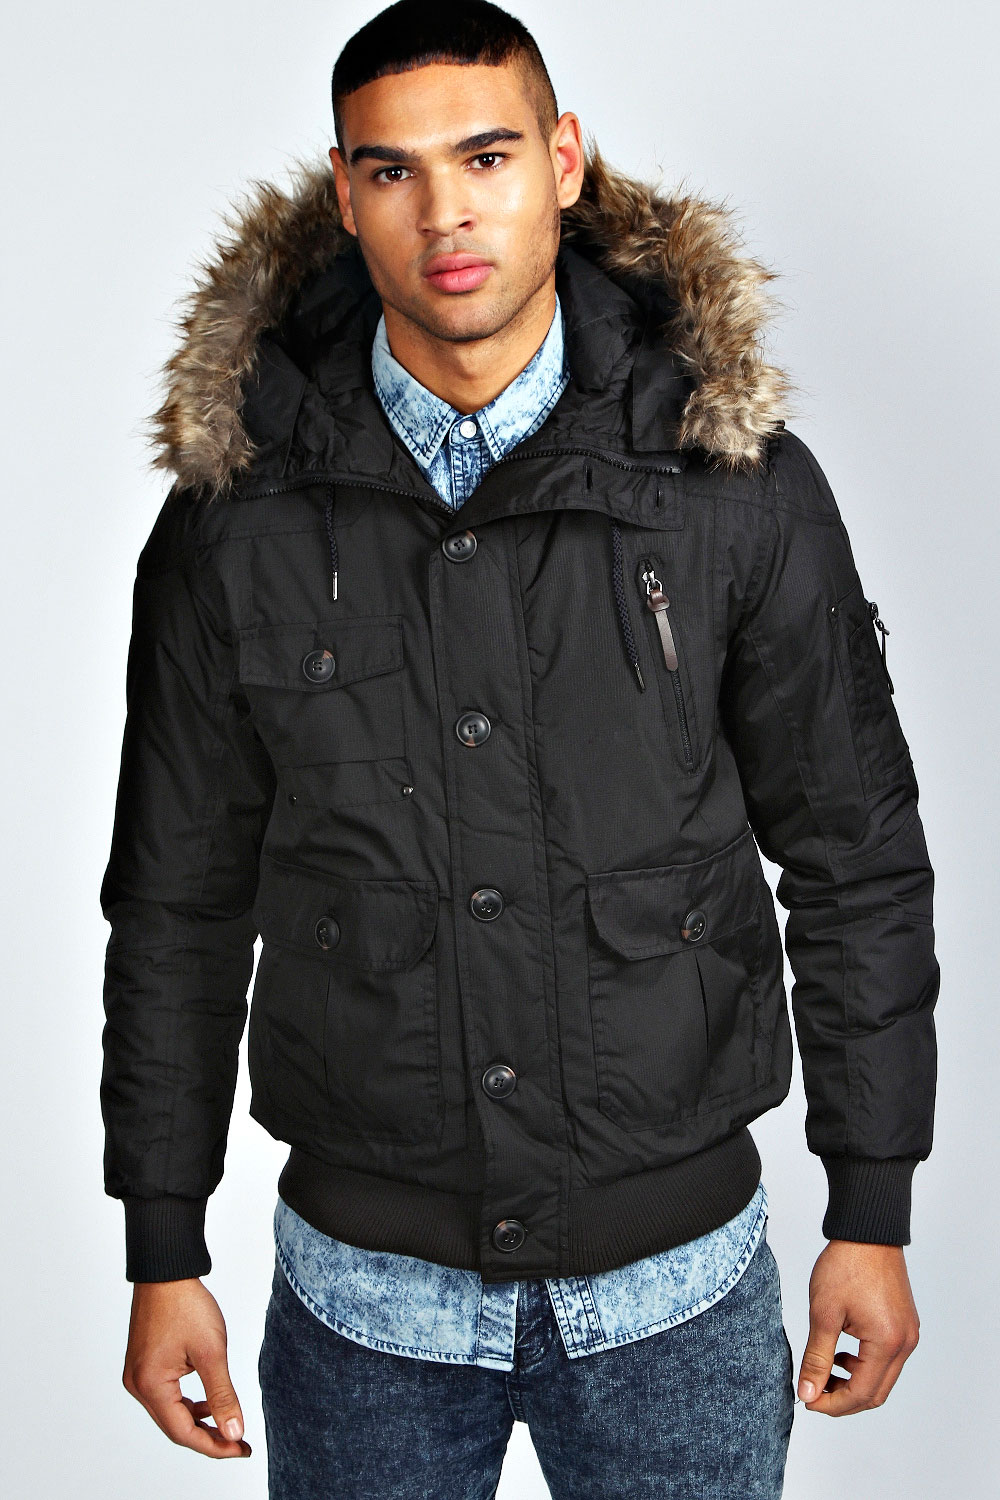 Black Parka Jacket Mens | Jackets Review